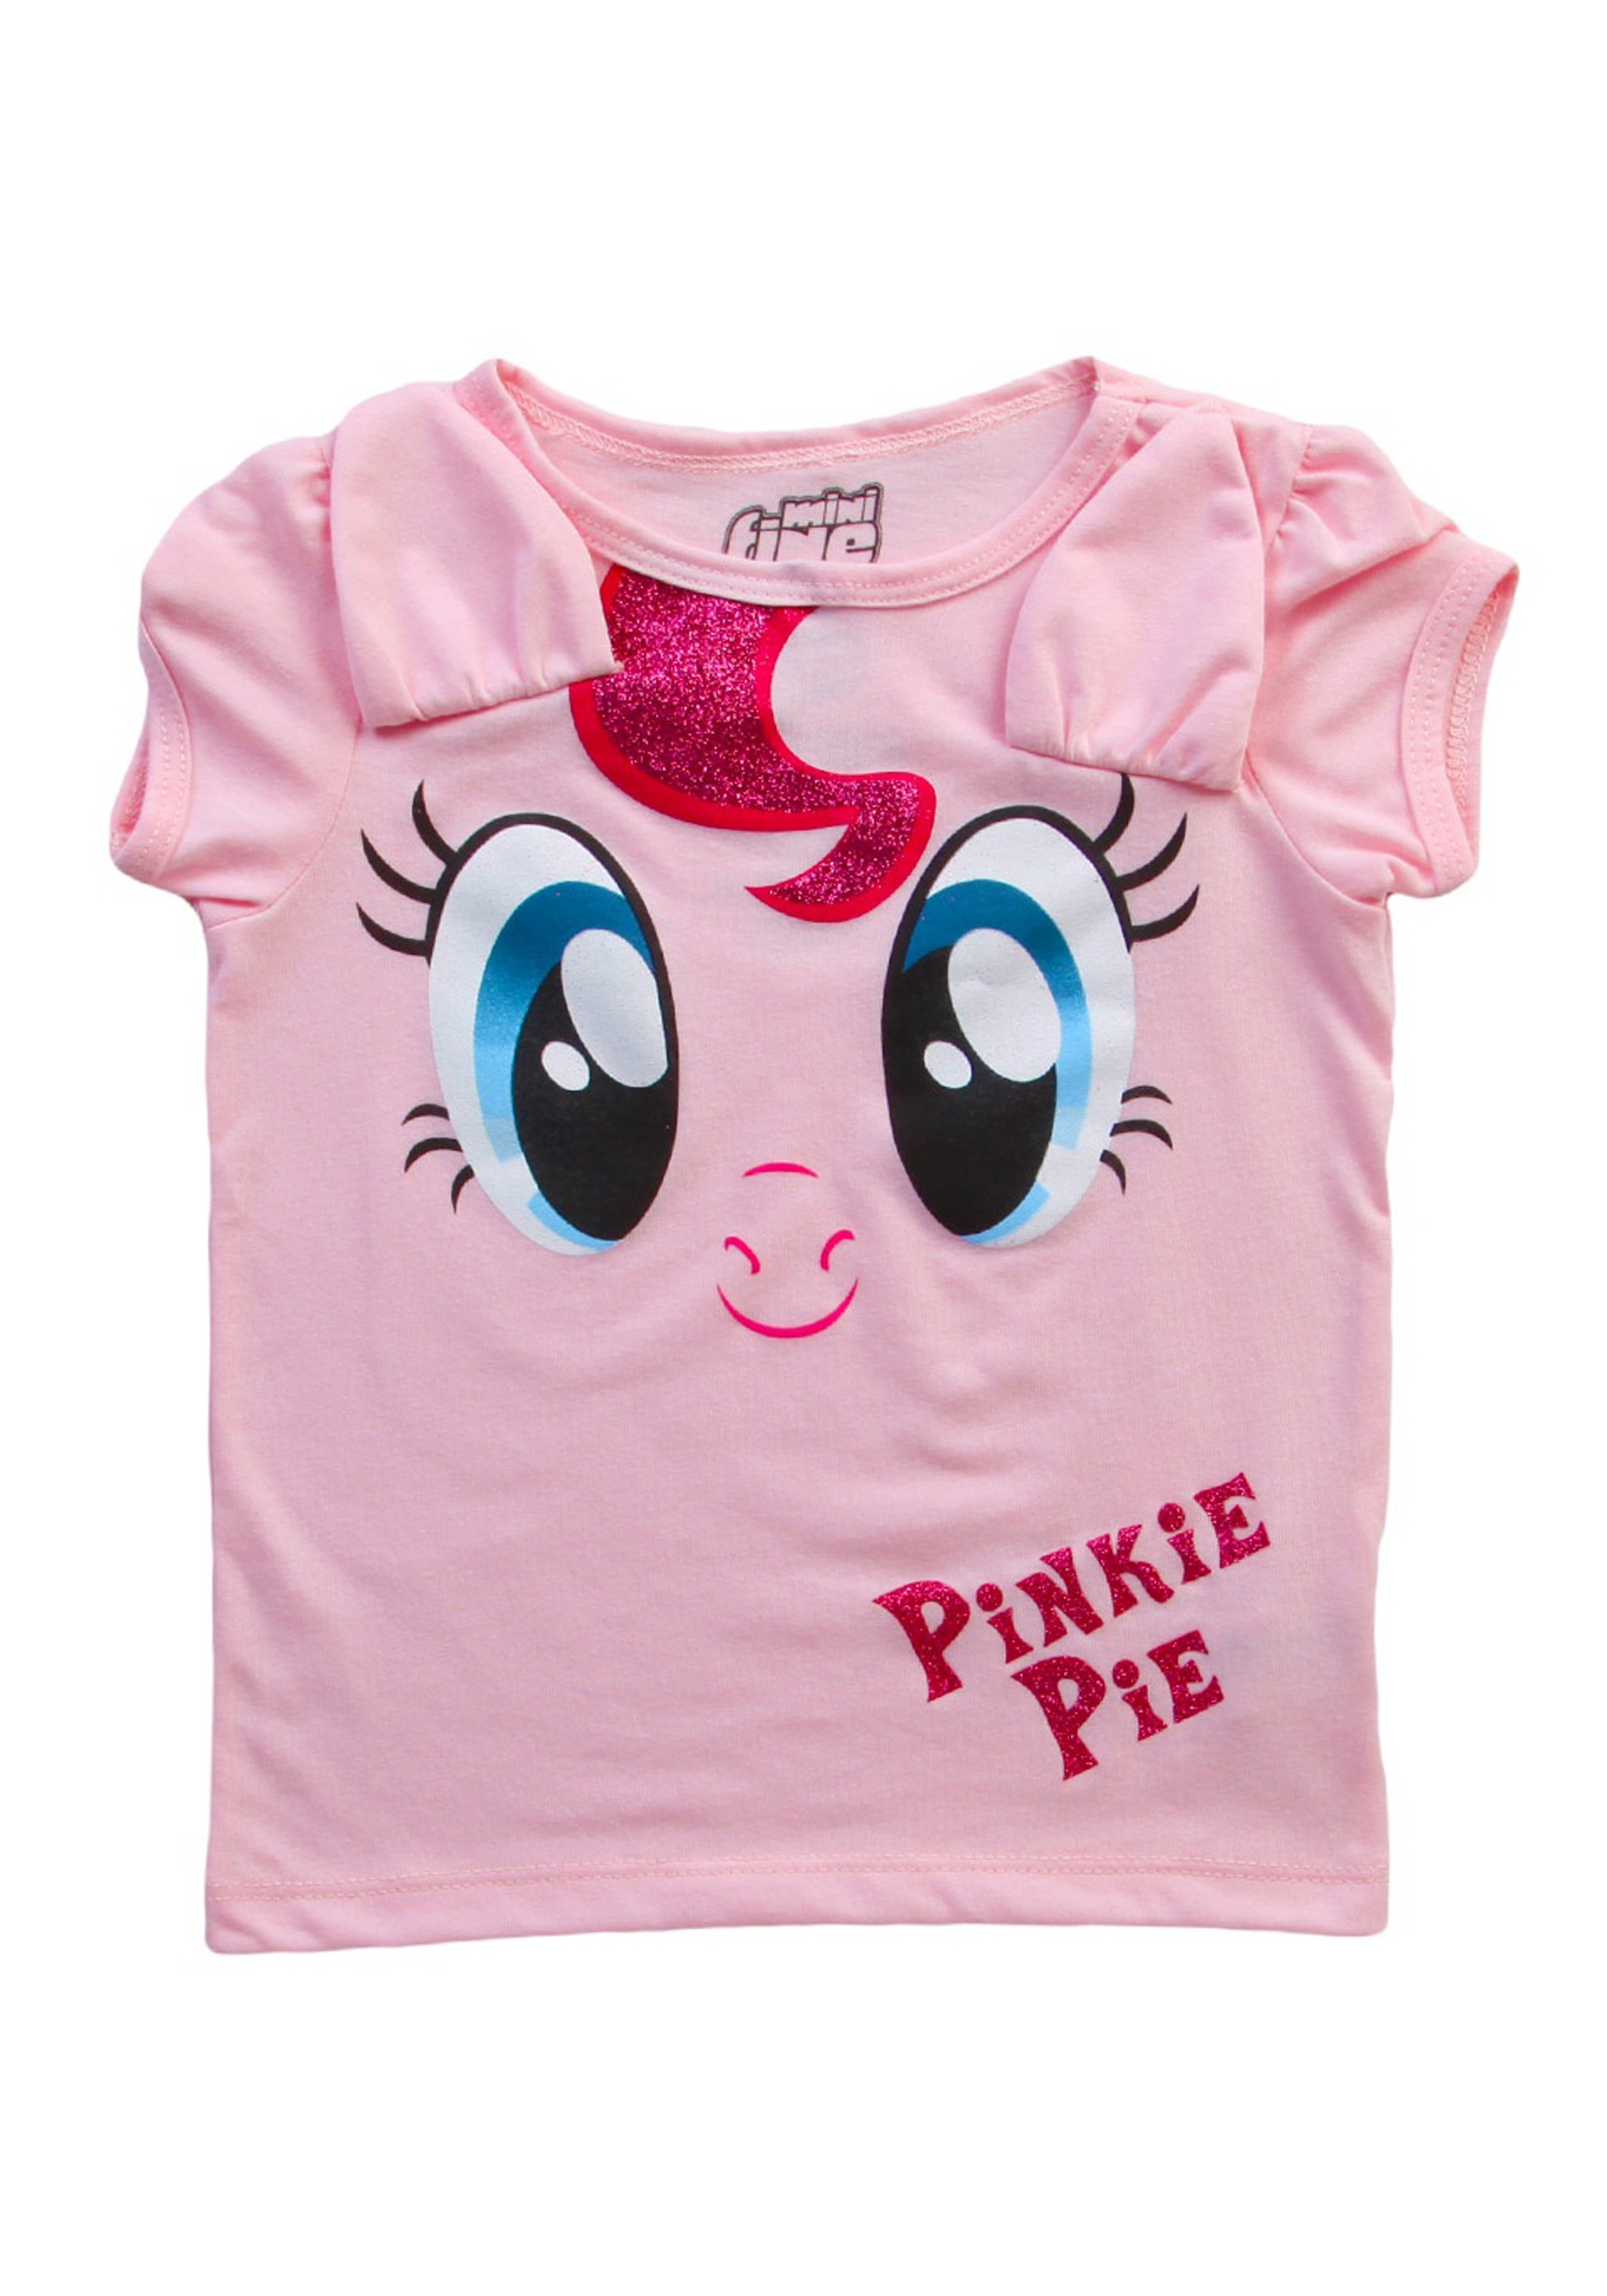 Toddler My Little Pony Pink Pie Costume T-Shirt  sc 1 st  Halloween Costumes & Toddler My Little Pony Pink Pie Costume T-Shirt - Halloween Costumes